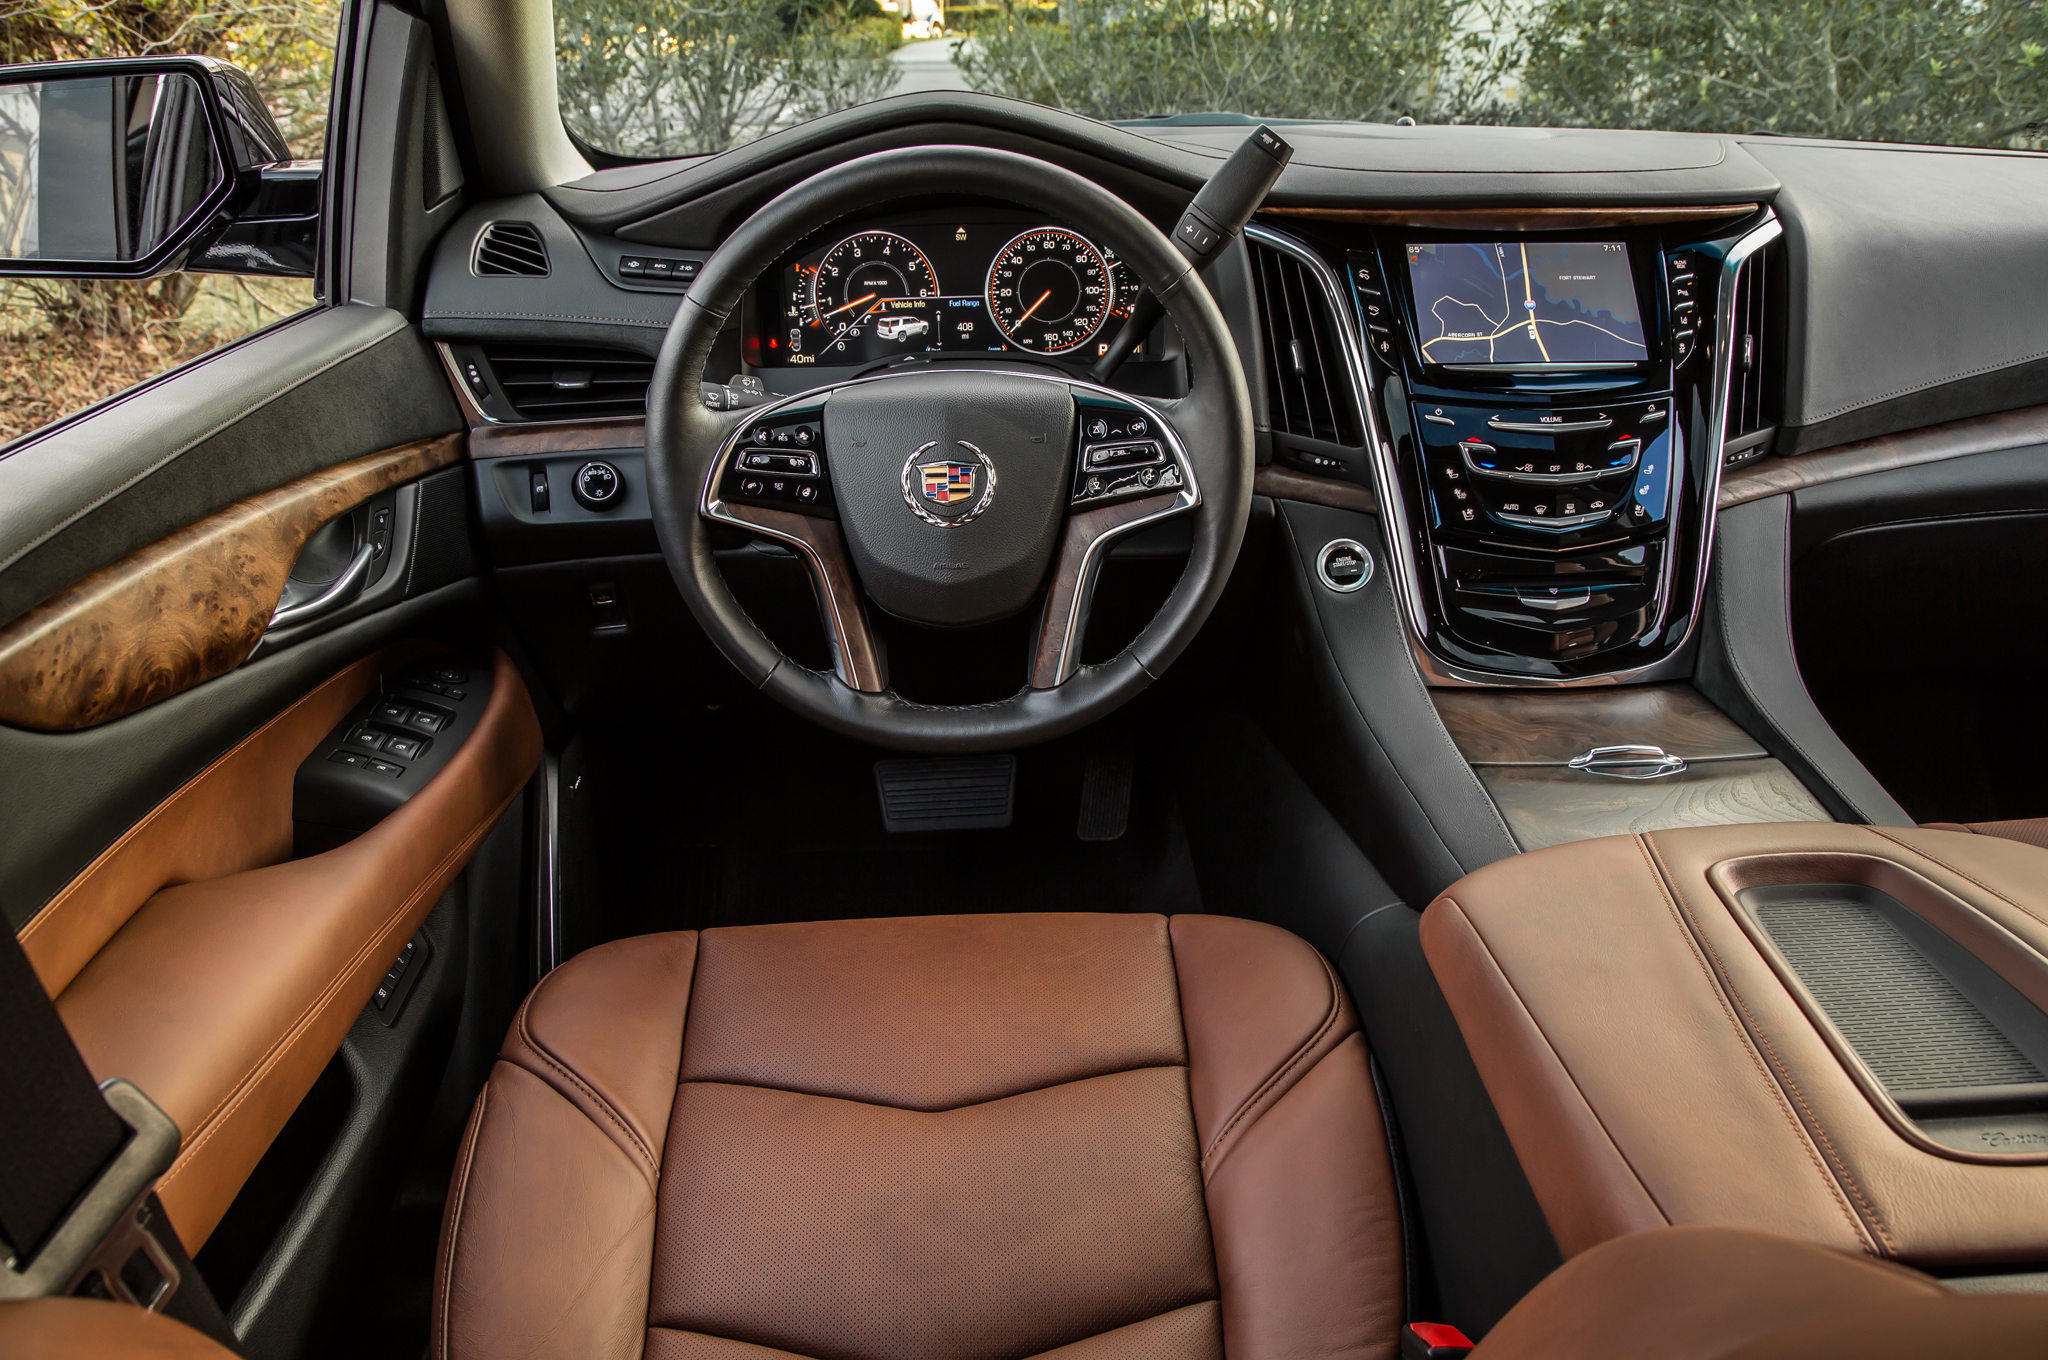 2015 Cadillac Escalade Cockpit 458 Cars Performance Reviews And Test Drive